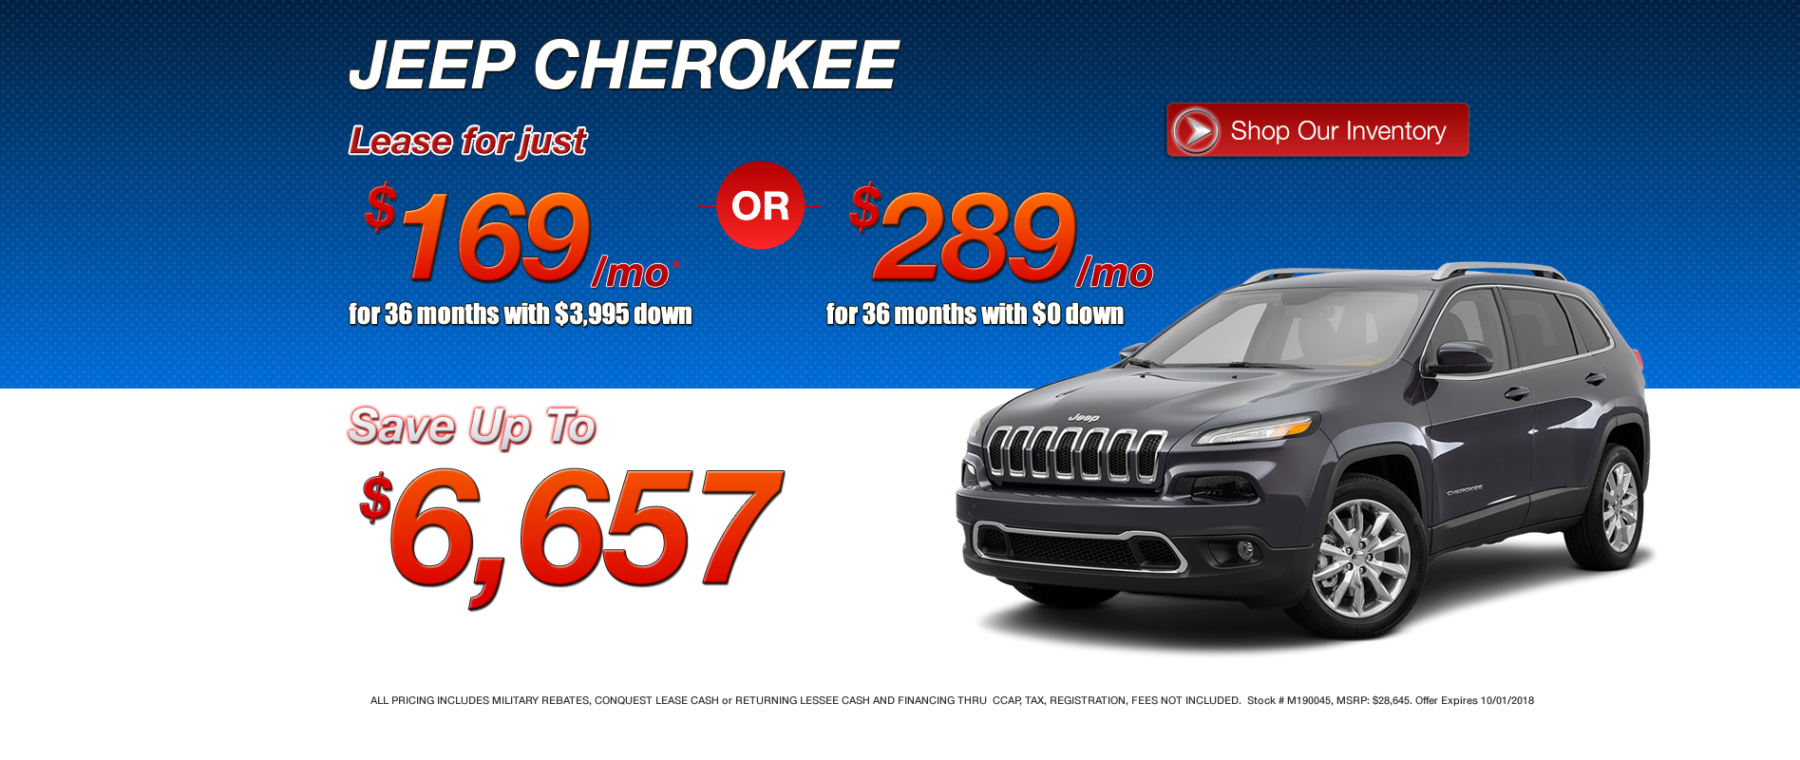 Best Jeep Cherokee Lease Deals in MA